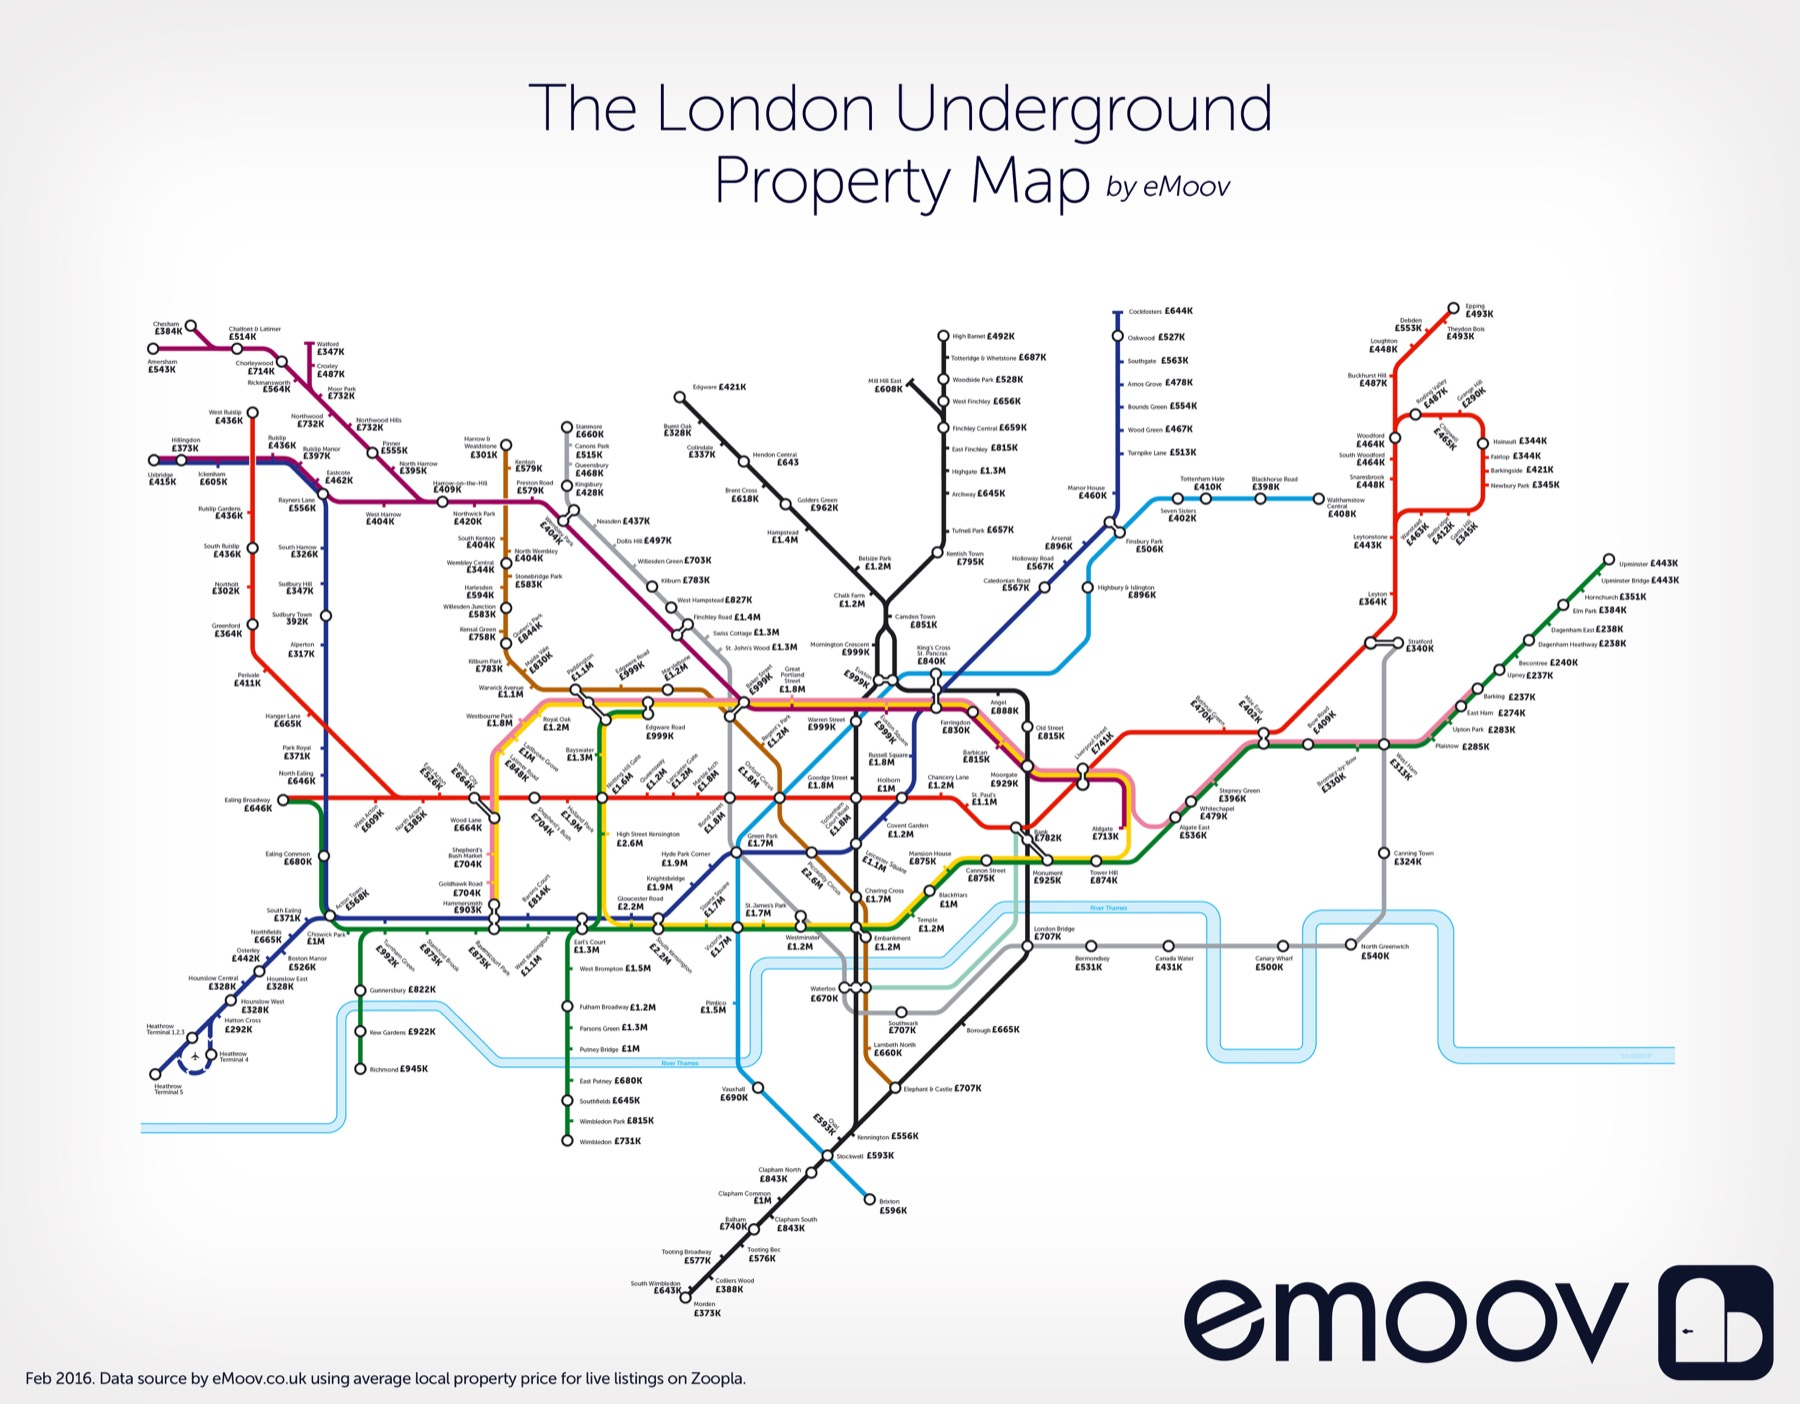 London Underground Property Map Reveals The Gaps In Prices Between - Northern line map london